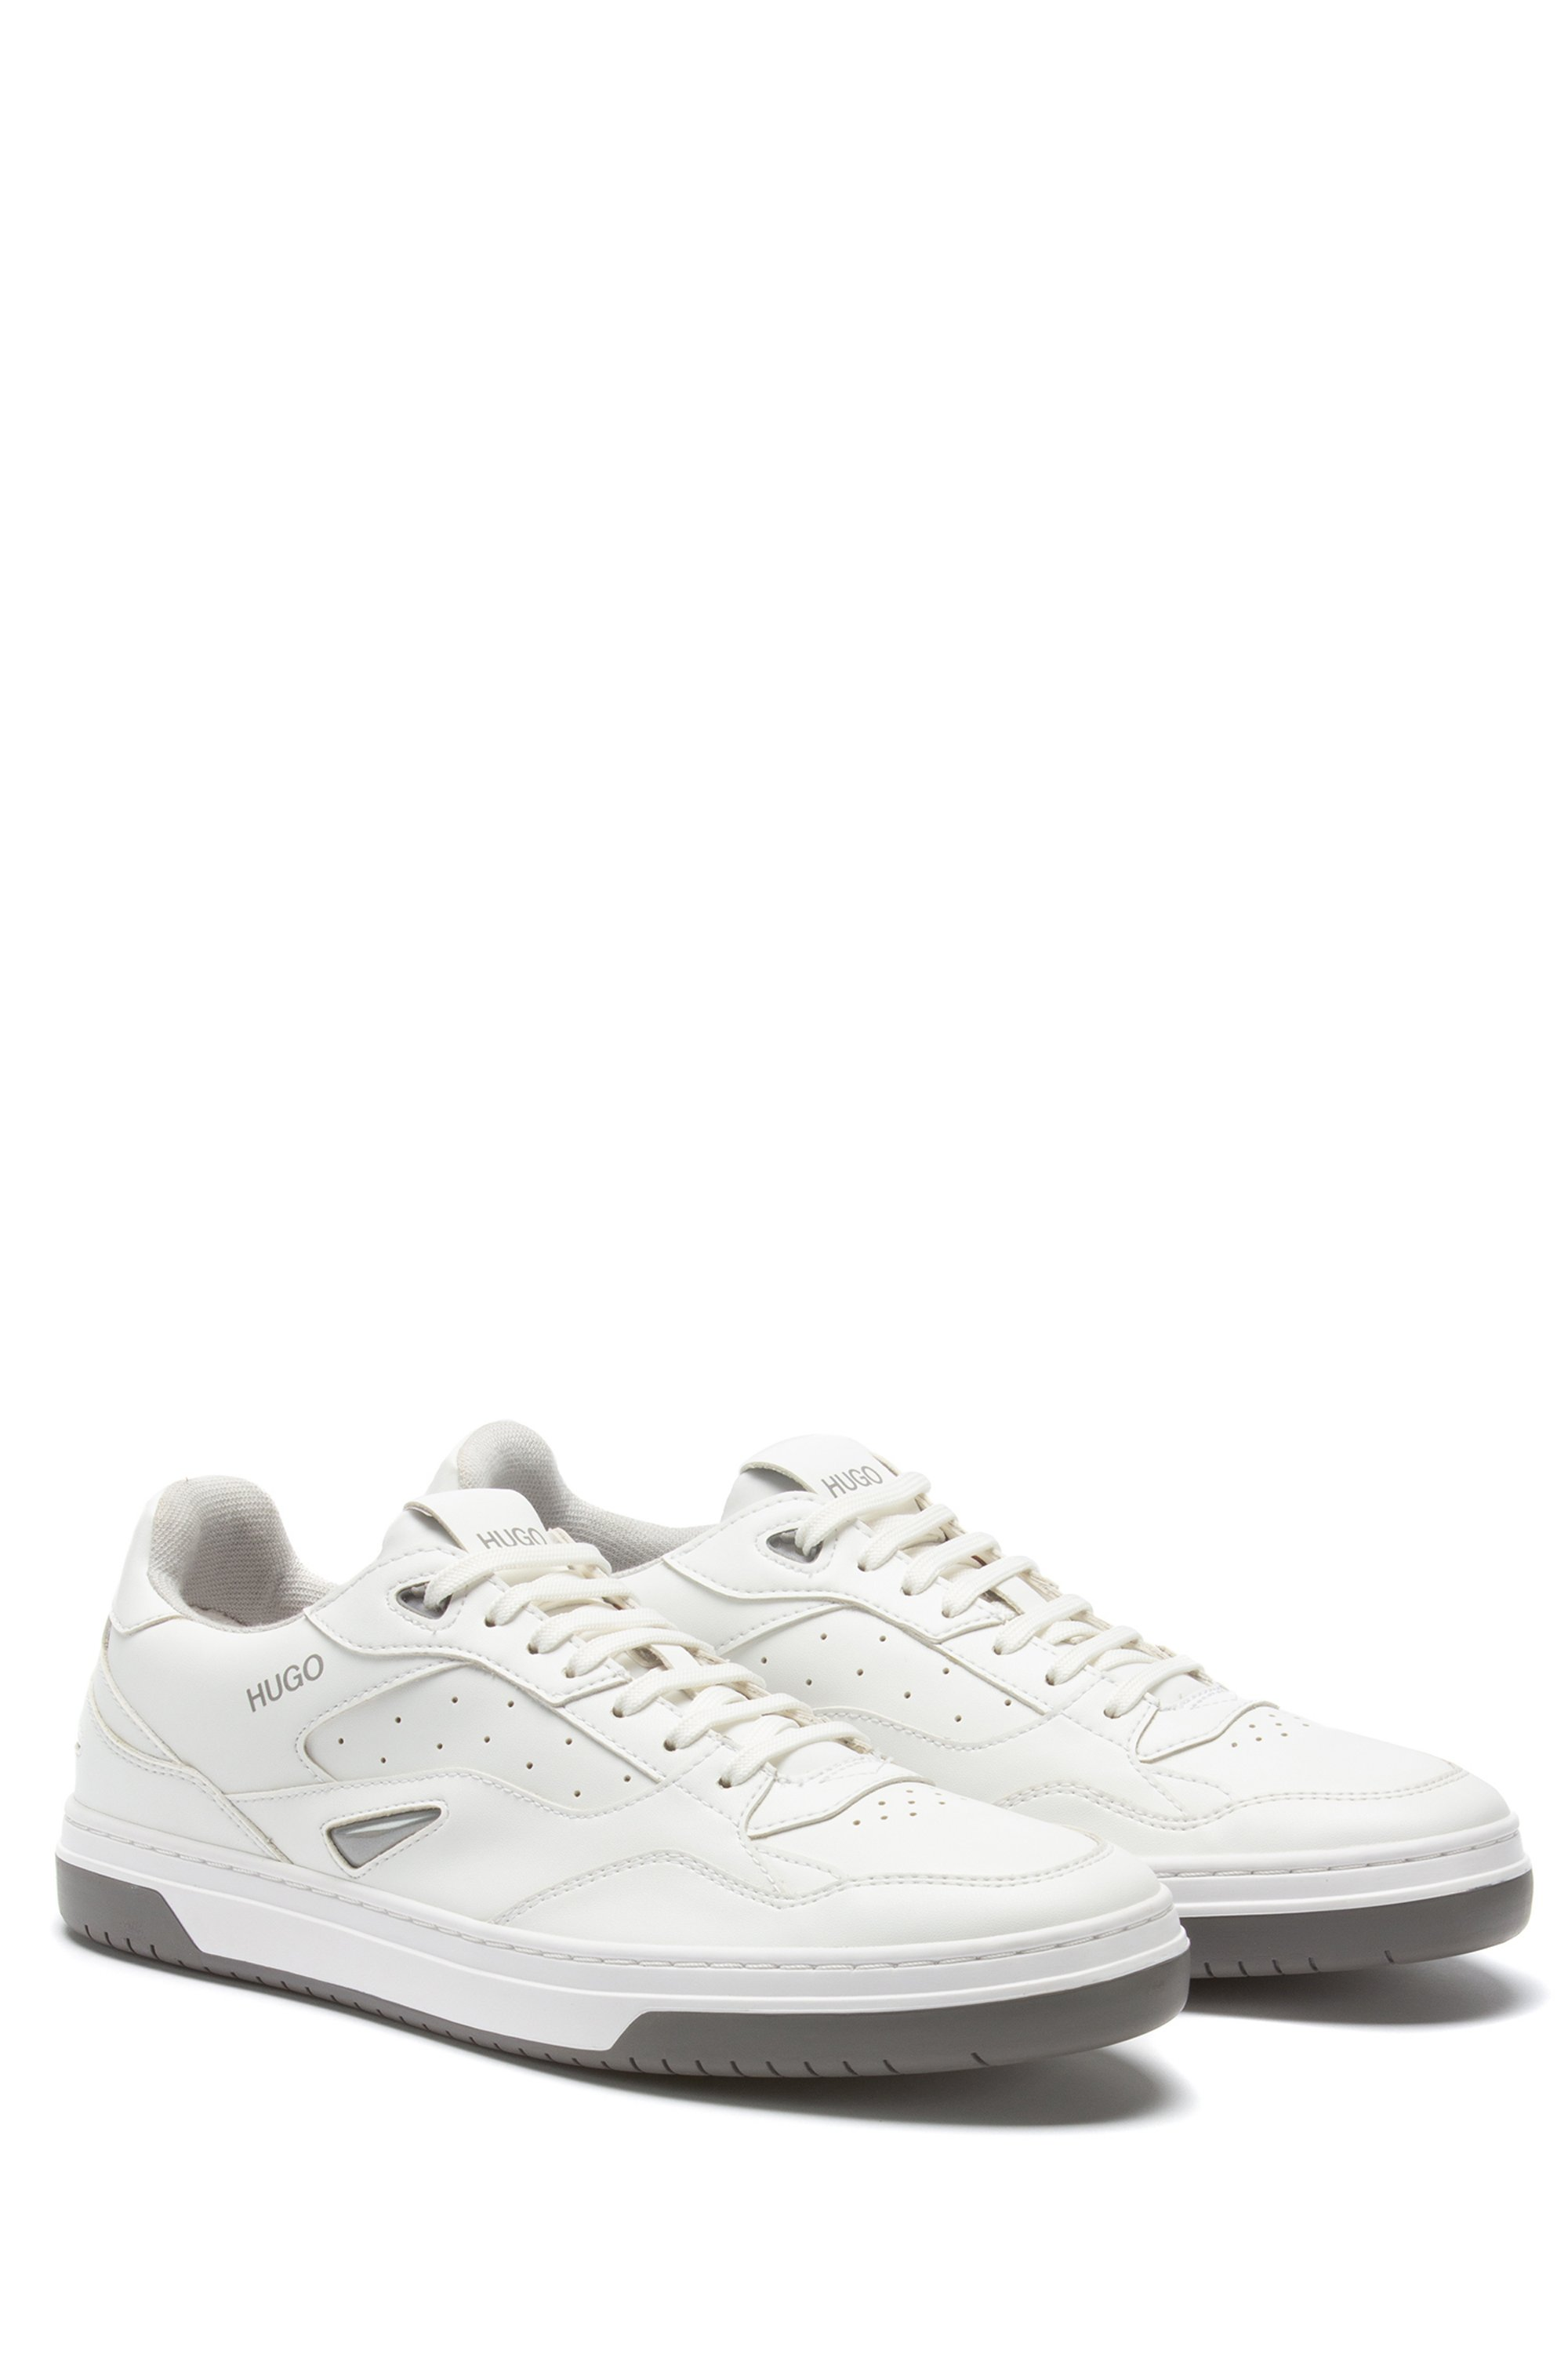 Skate-inspired trainers with bonded-leather uppers